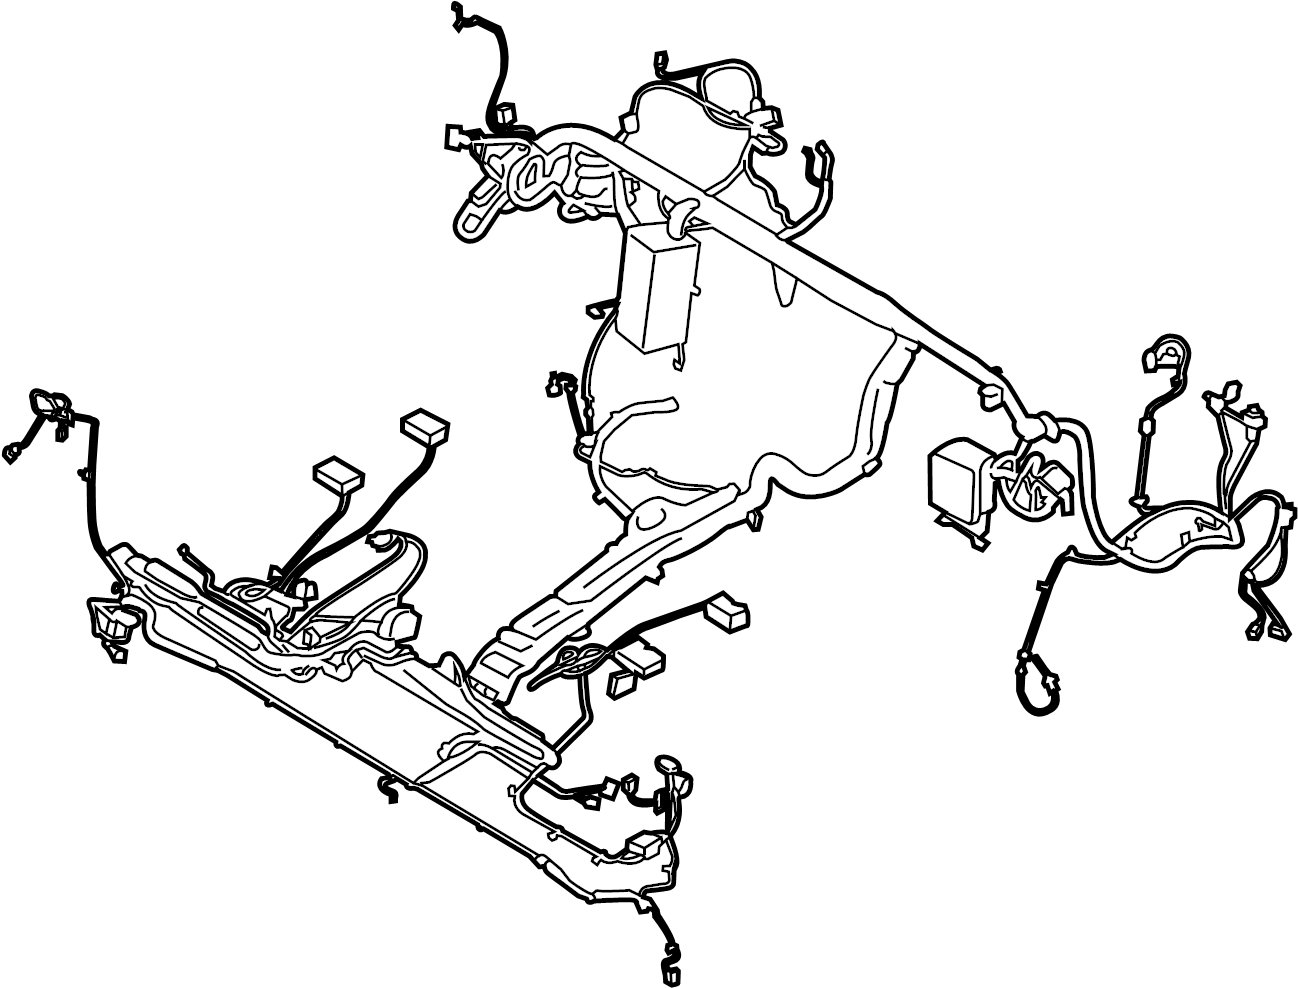 Ford Transit 350 Hd Wire Harness Wiring Assembly